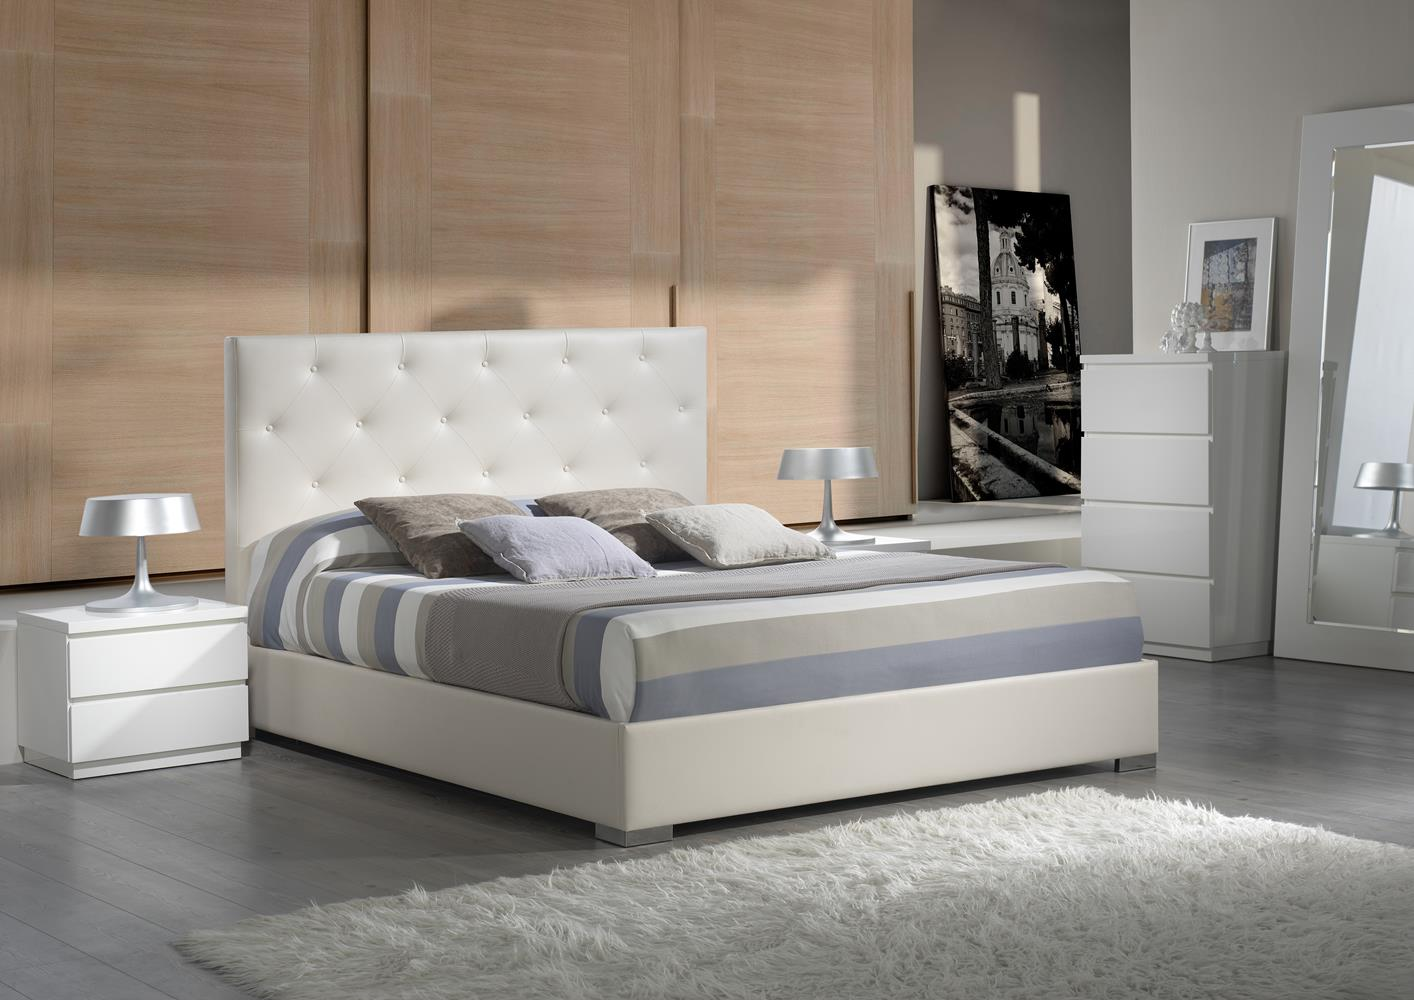 acheter votre lit capitonn contemporain en pvc blanc option lit coffre avec syst me air. Black Bedroom Furniture Sets. Home Design Ideas